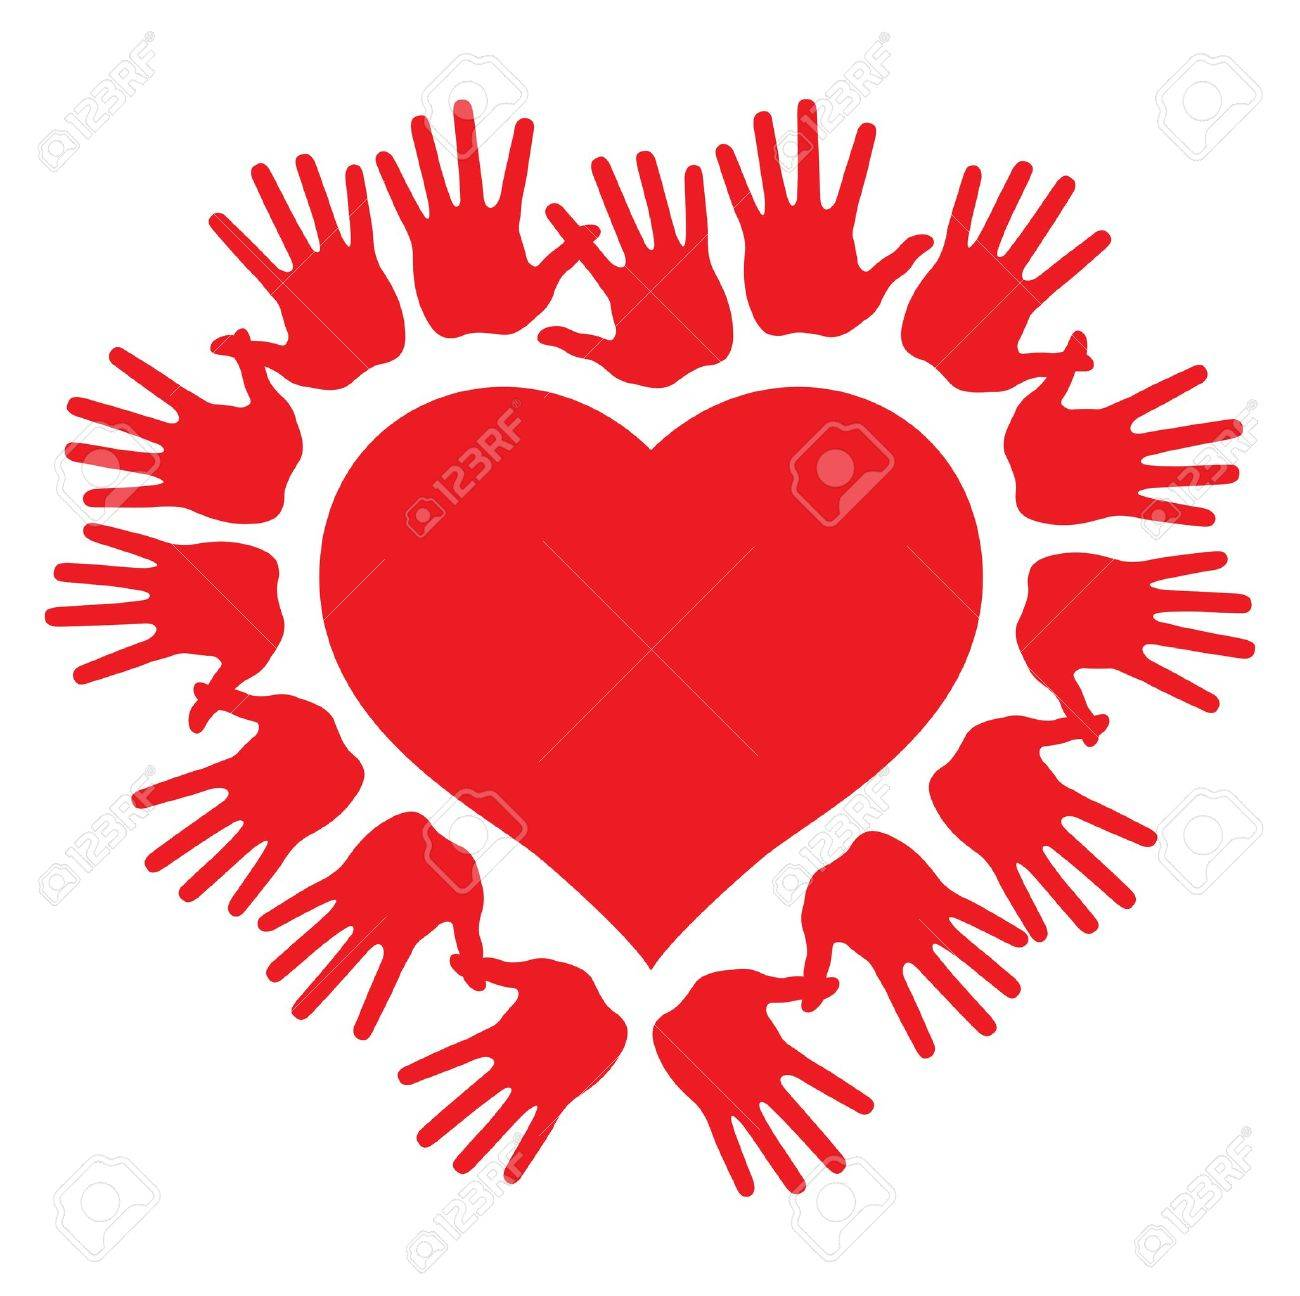 hands around a heart, abstract vector illustration Stock Vector - 12799246